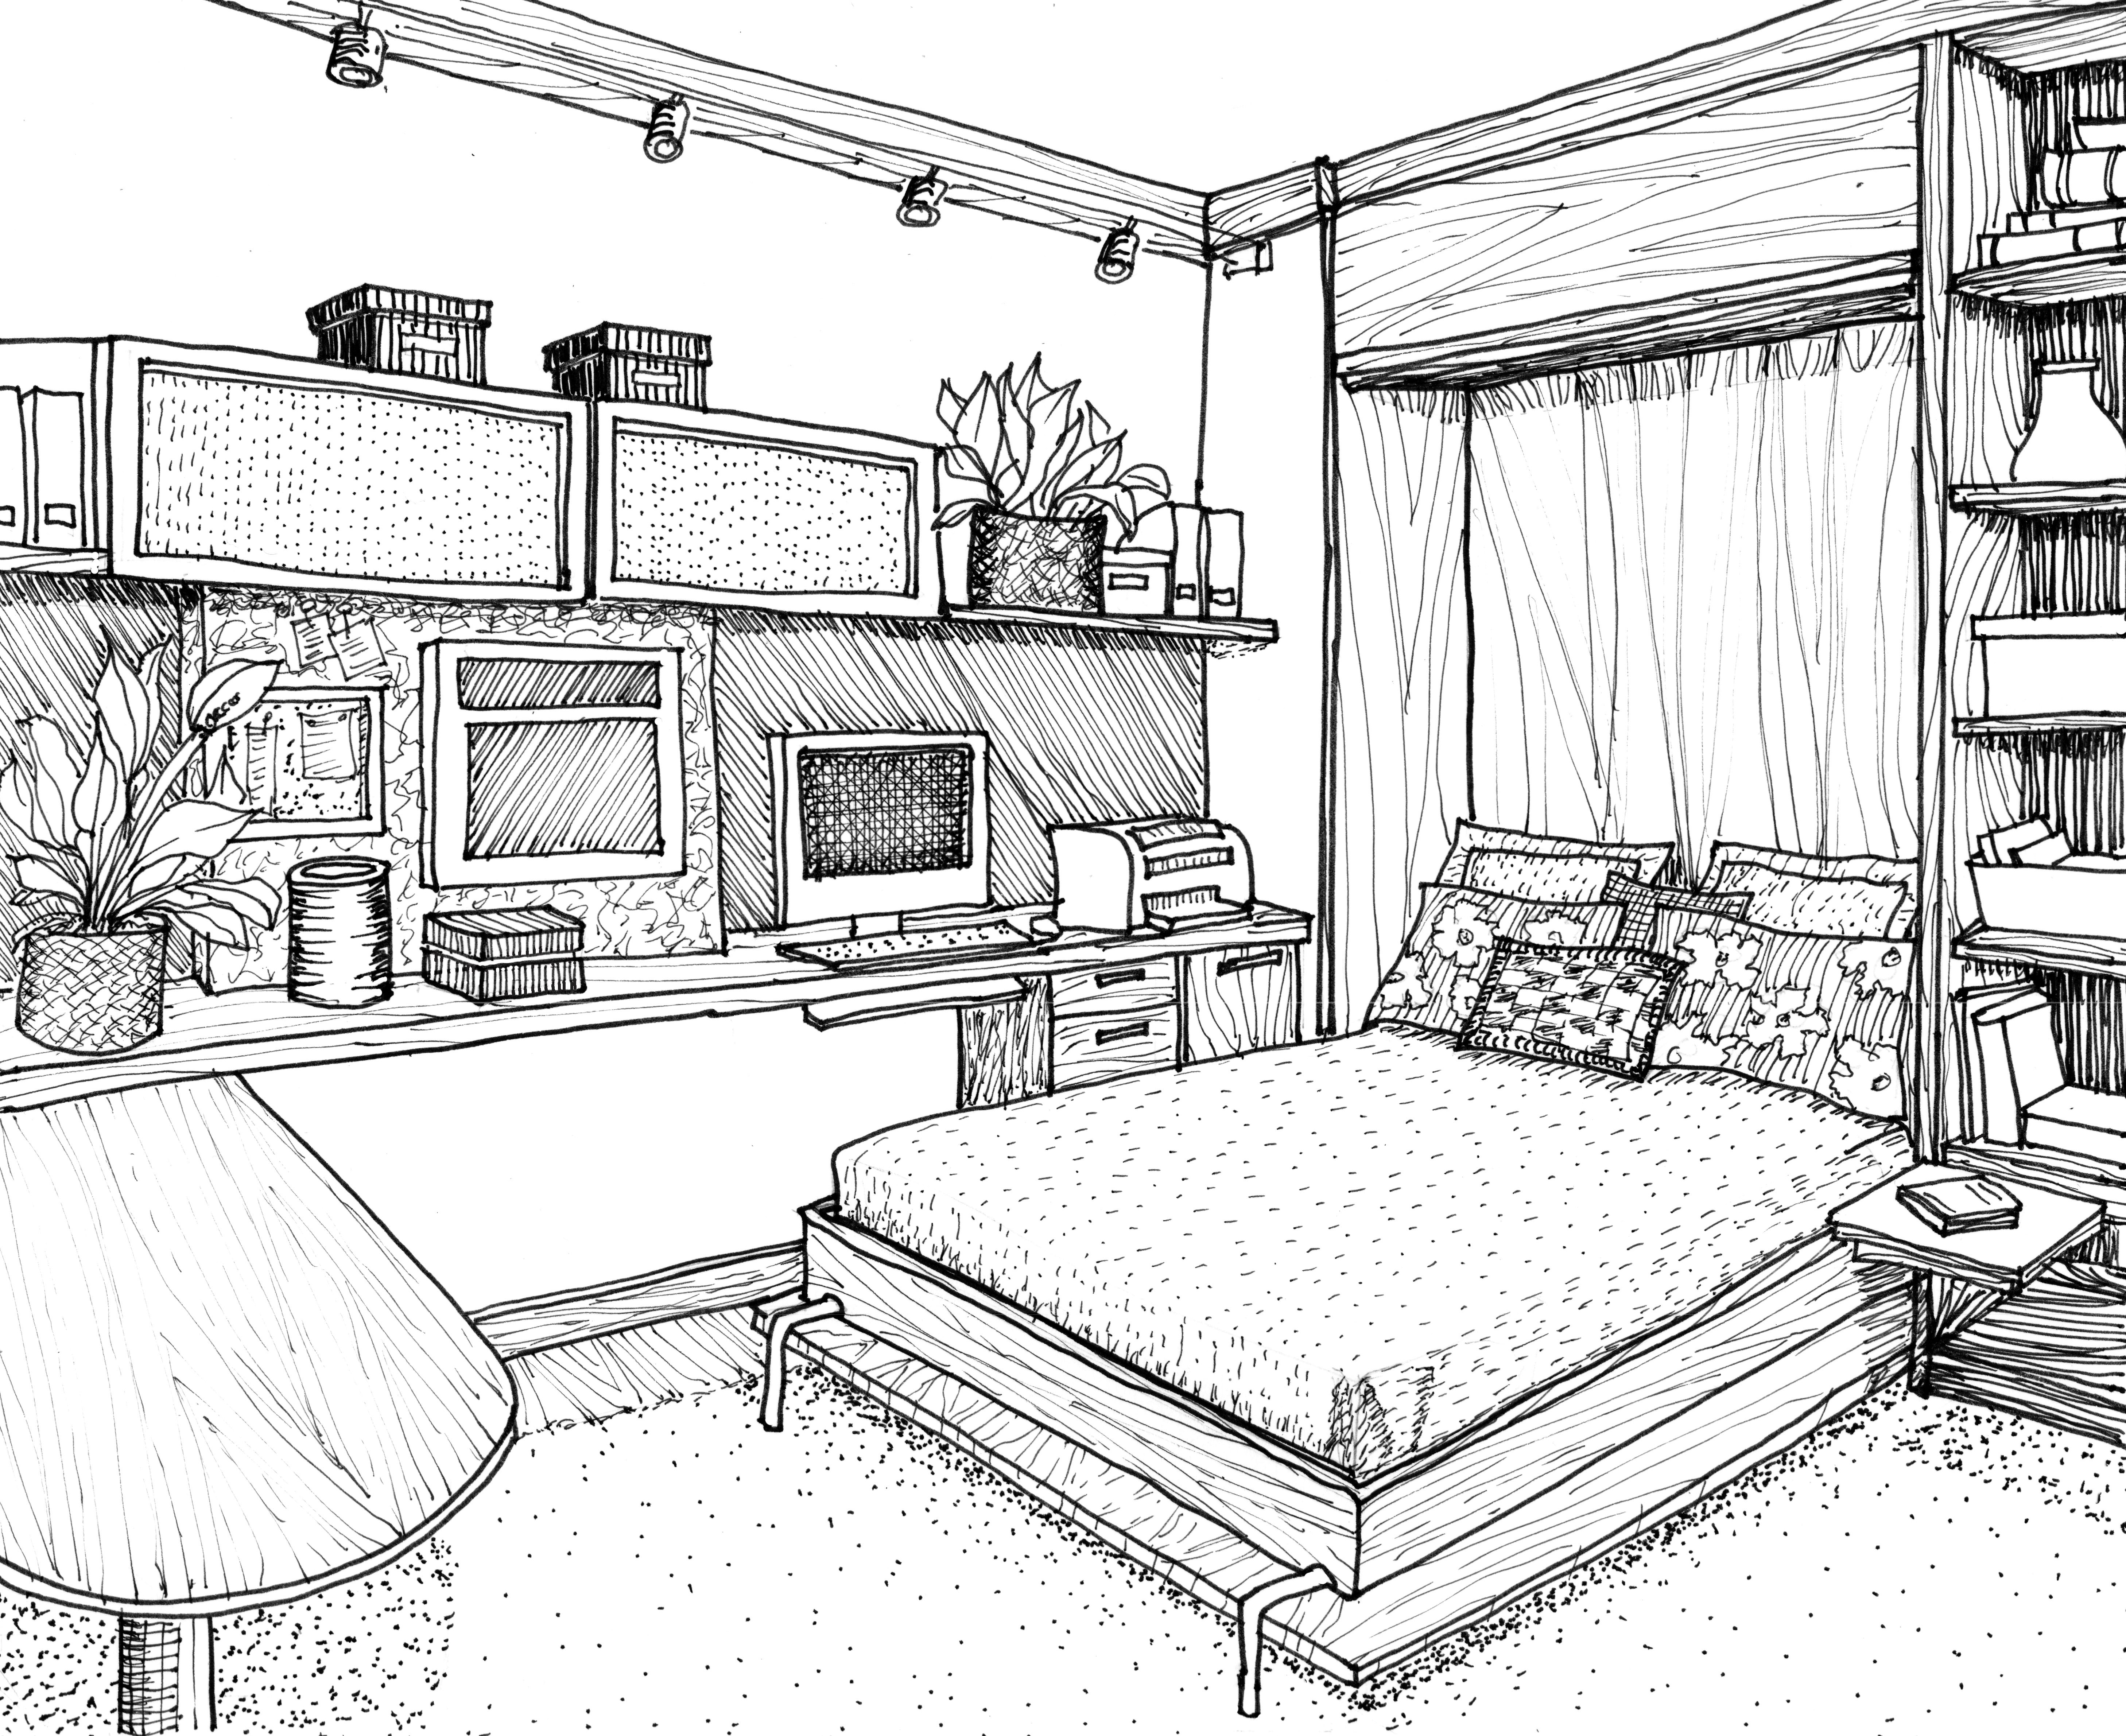 5830x4761 Perspective Drawing Of A Bedroom